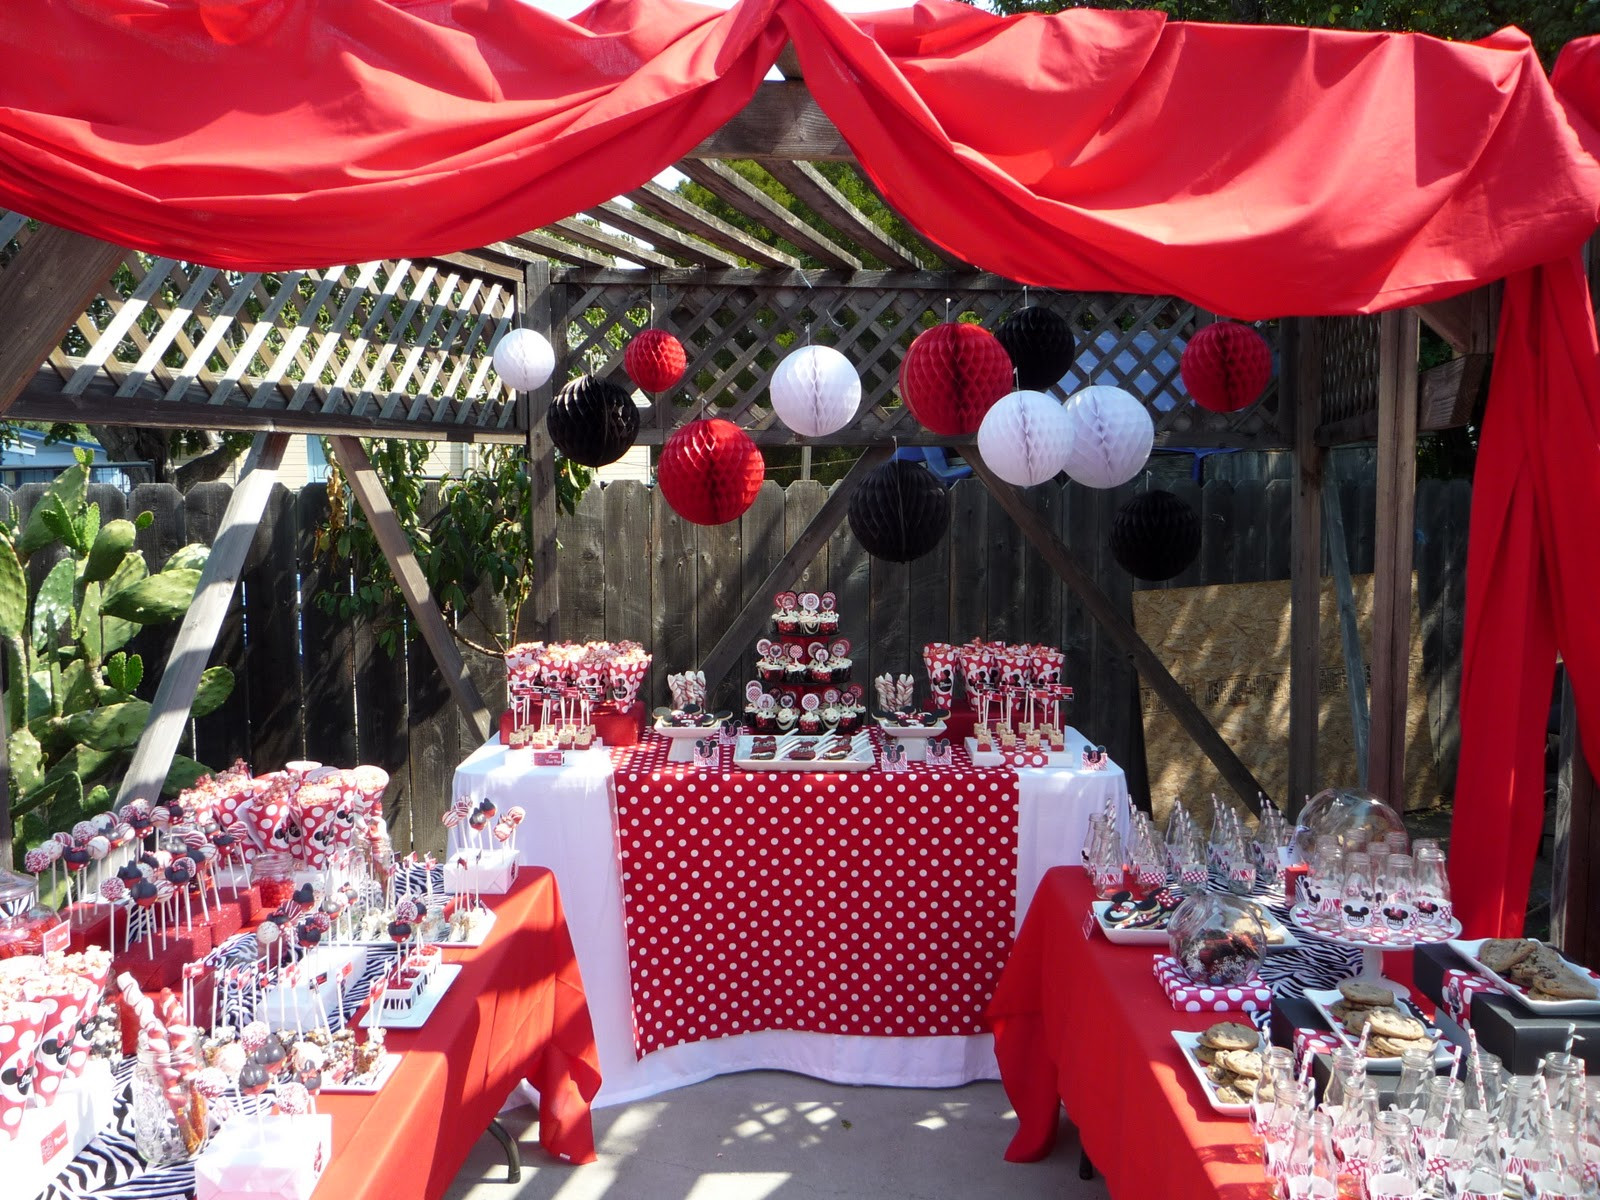 Minnie Mouse Backyard Party Ideas  Honey b Events & Design The House of Minnie Mouse